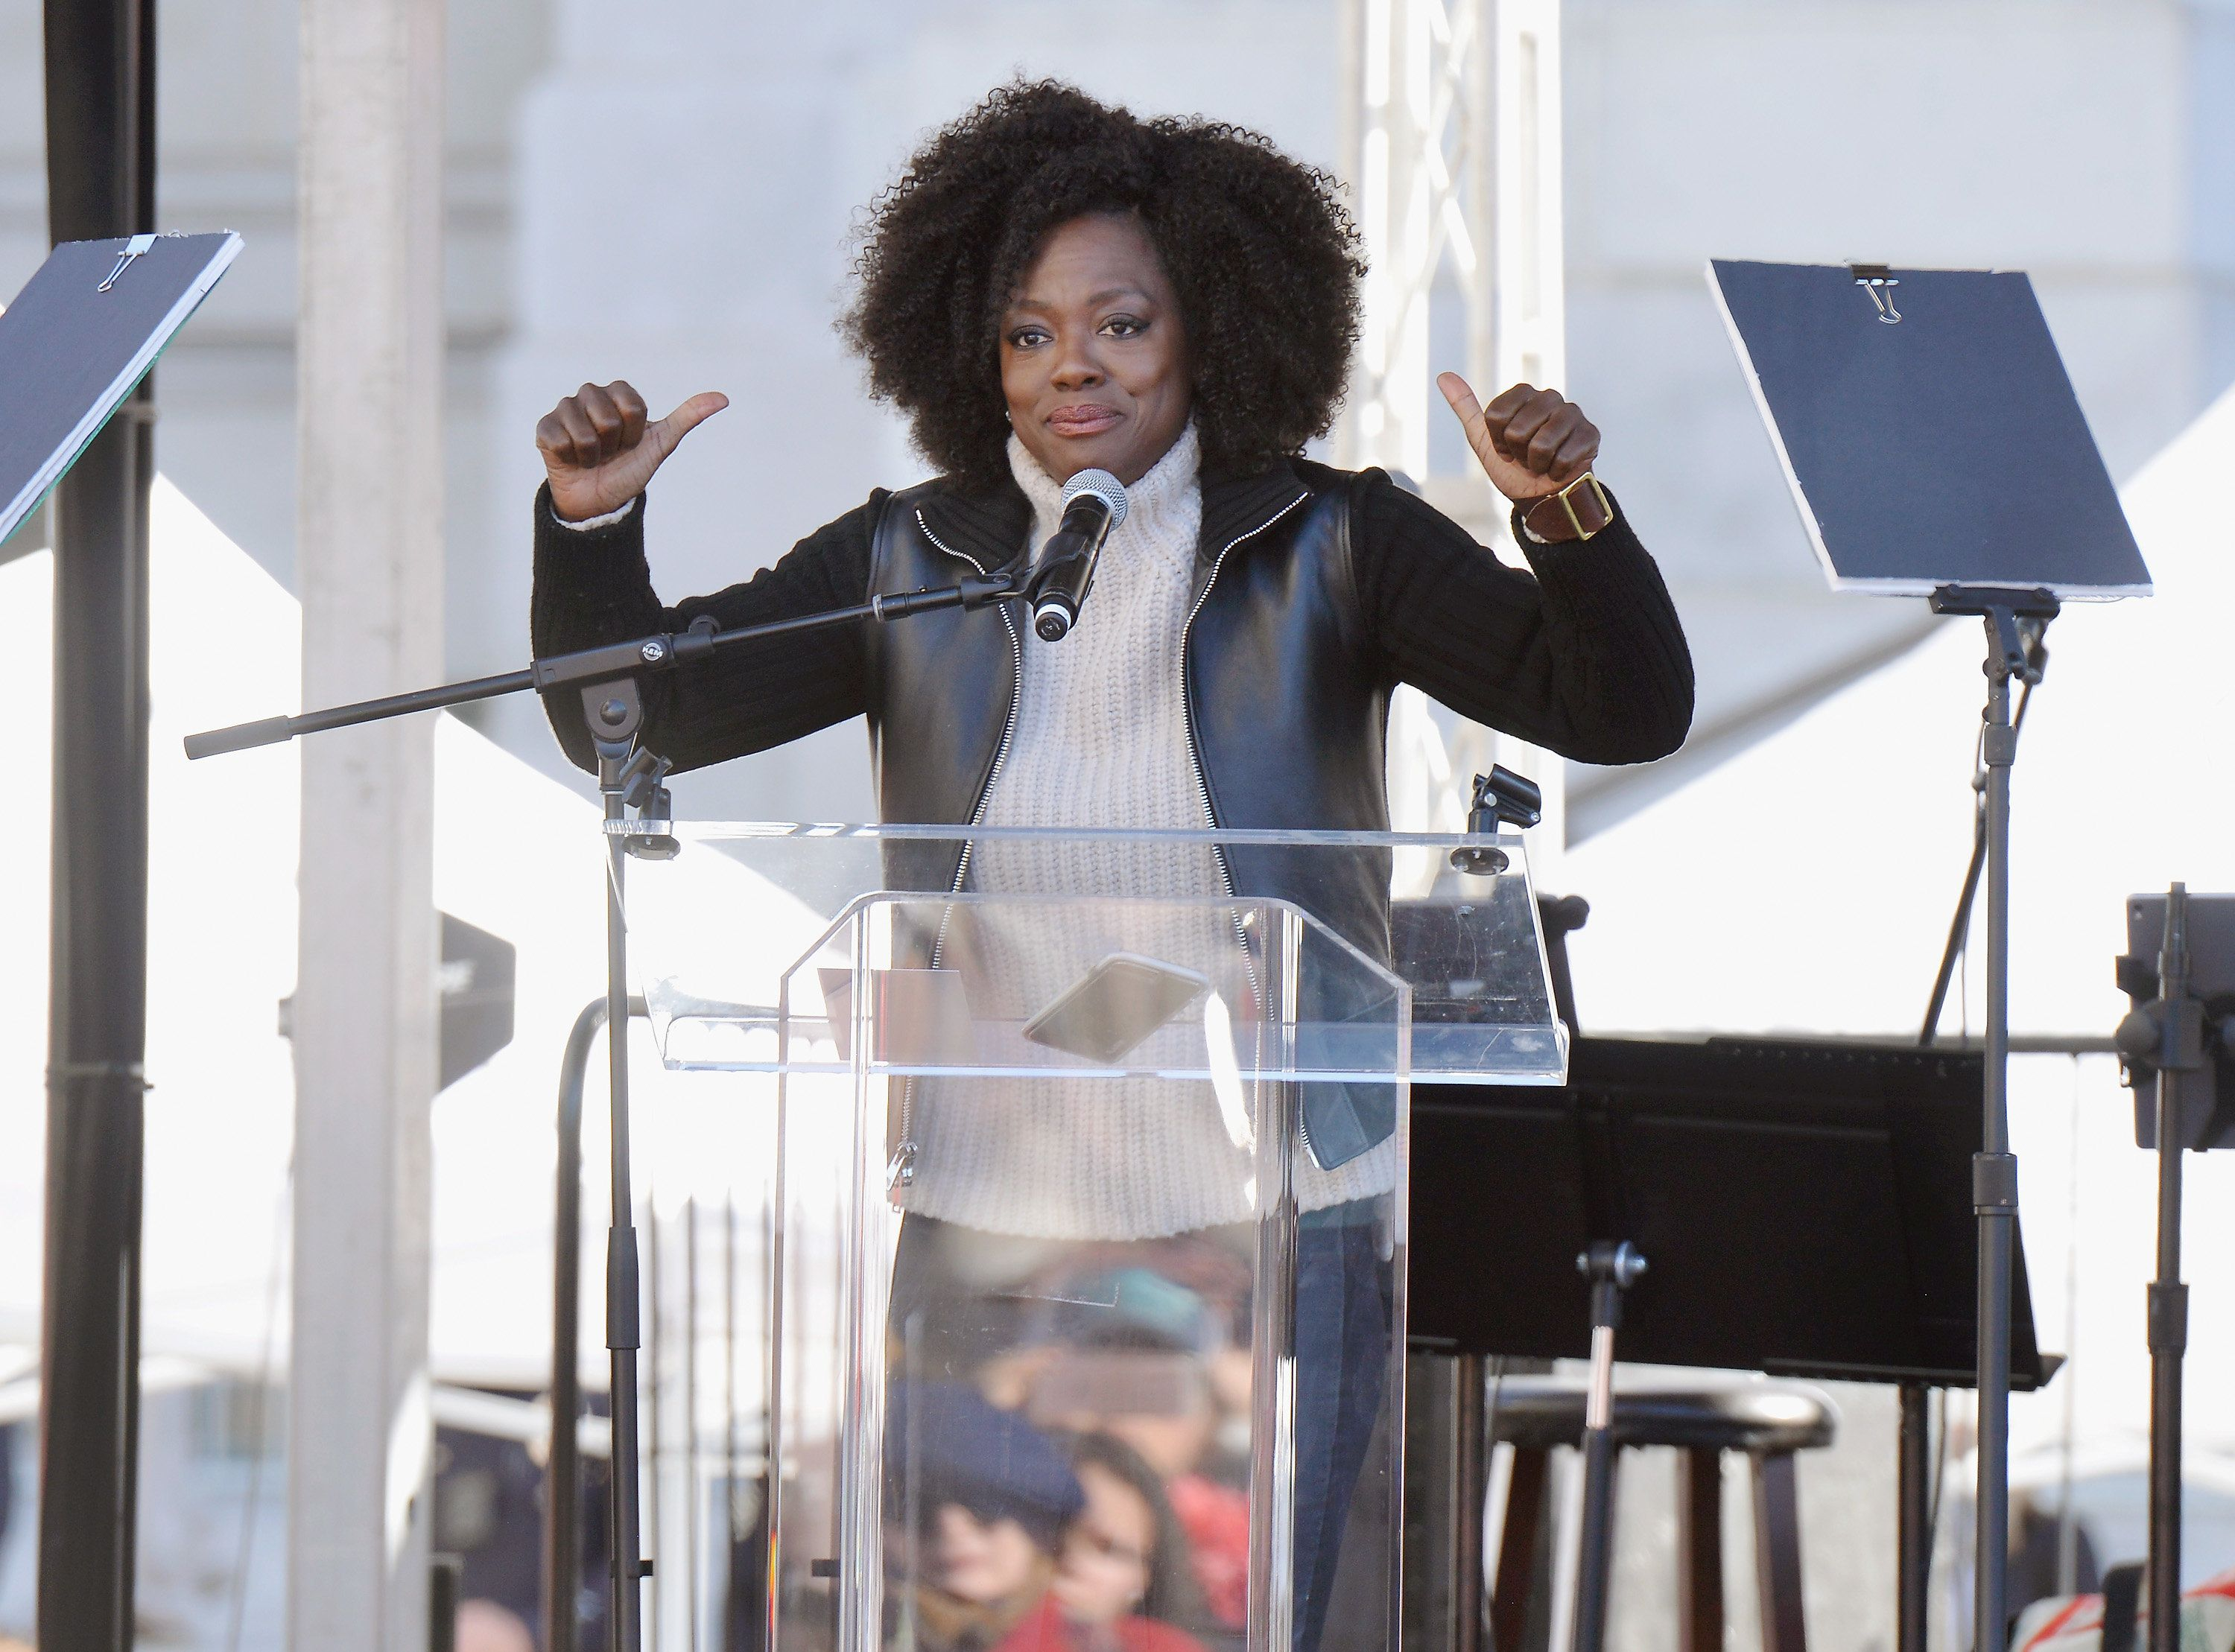 If You Only Watch One Thing Today, Make It Viola Davis's Women's March Speech